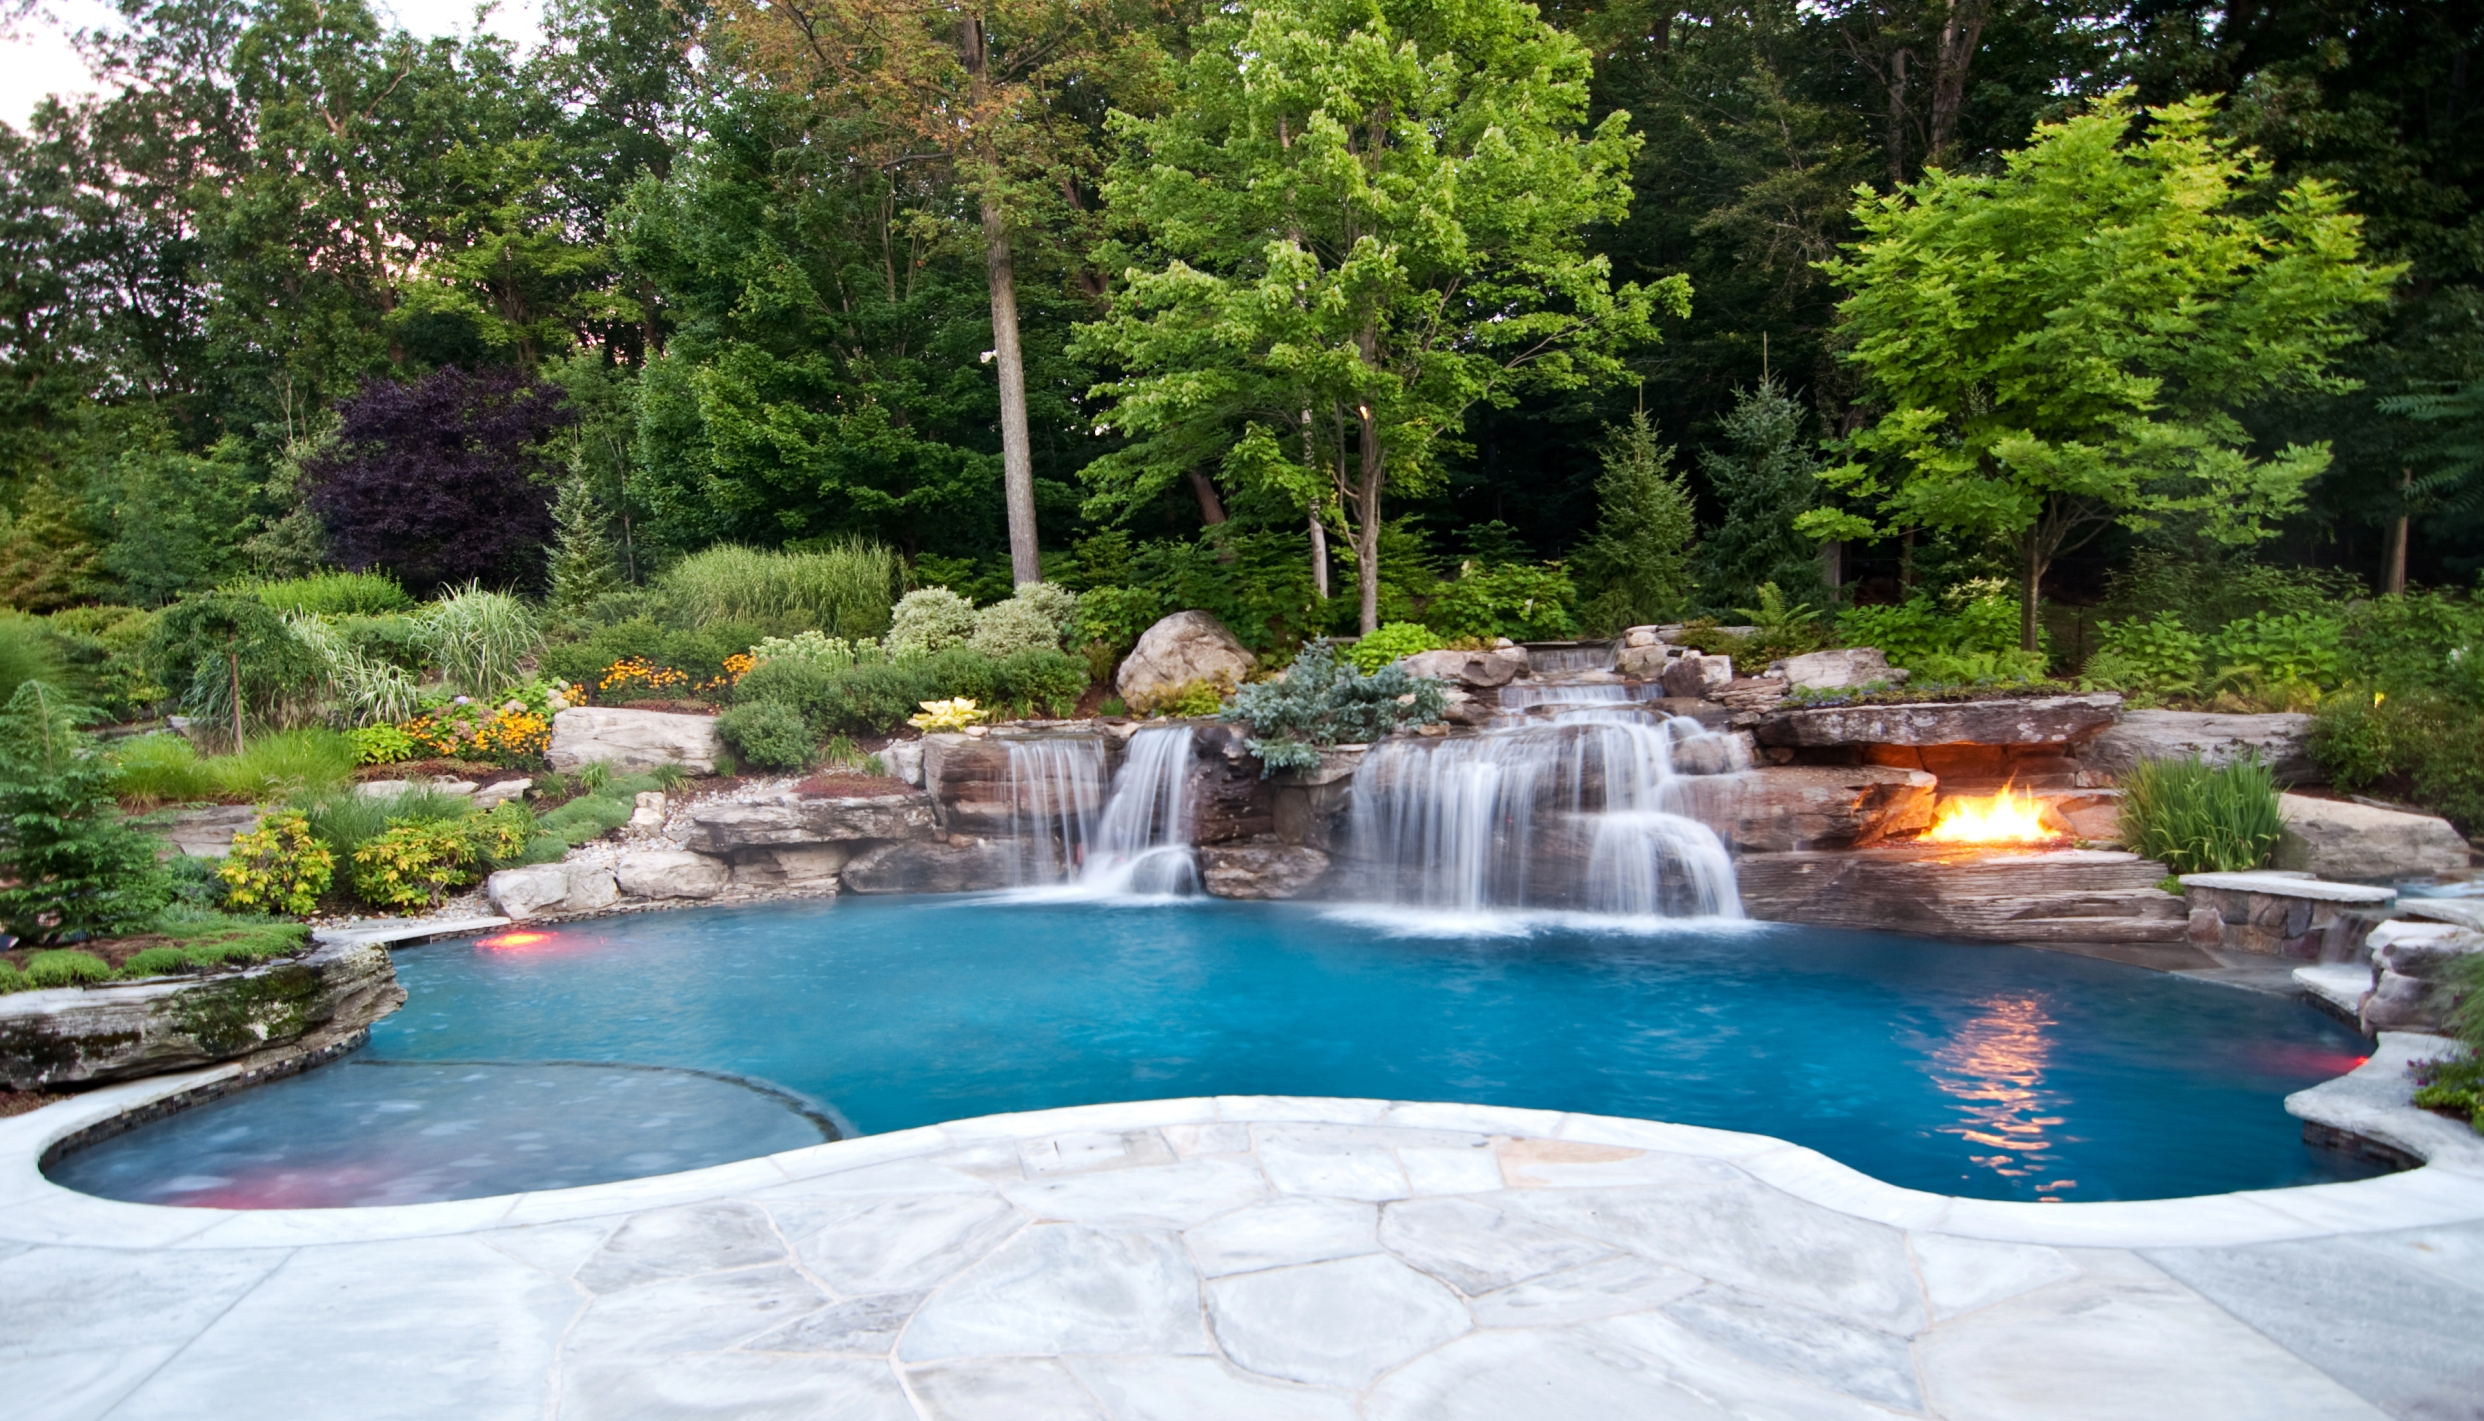 Impressive Luxury Swimming Pool with Waterfall 2484 x 1421 · 2449 kB · jpeg